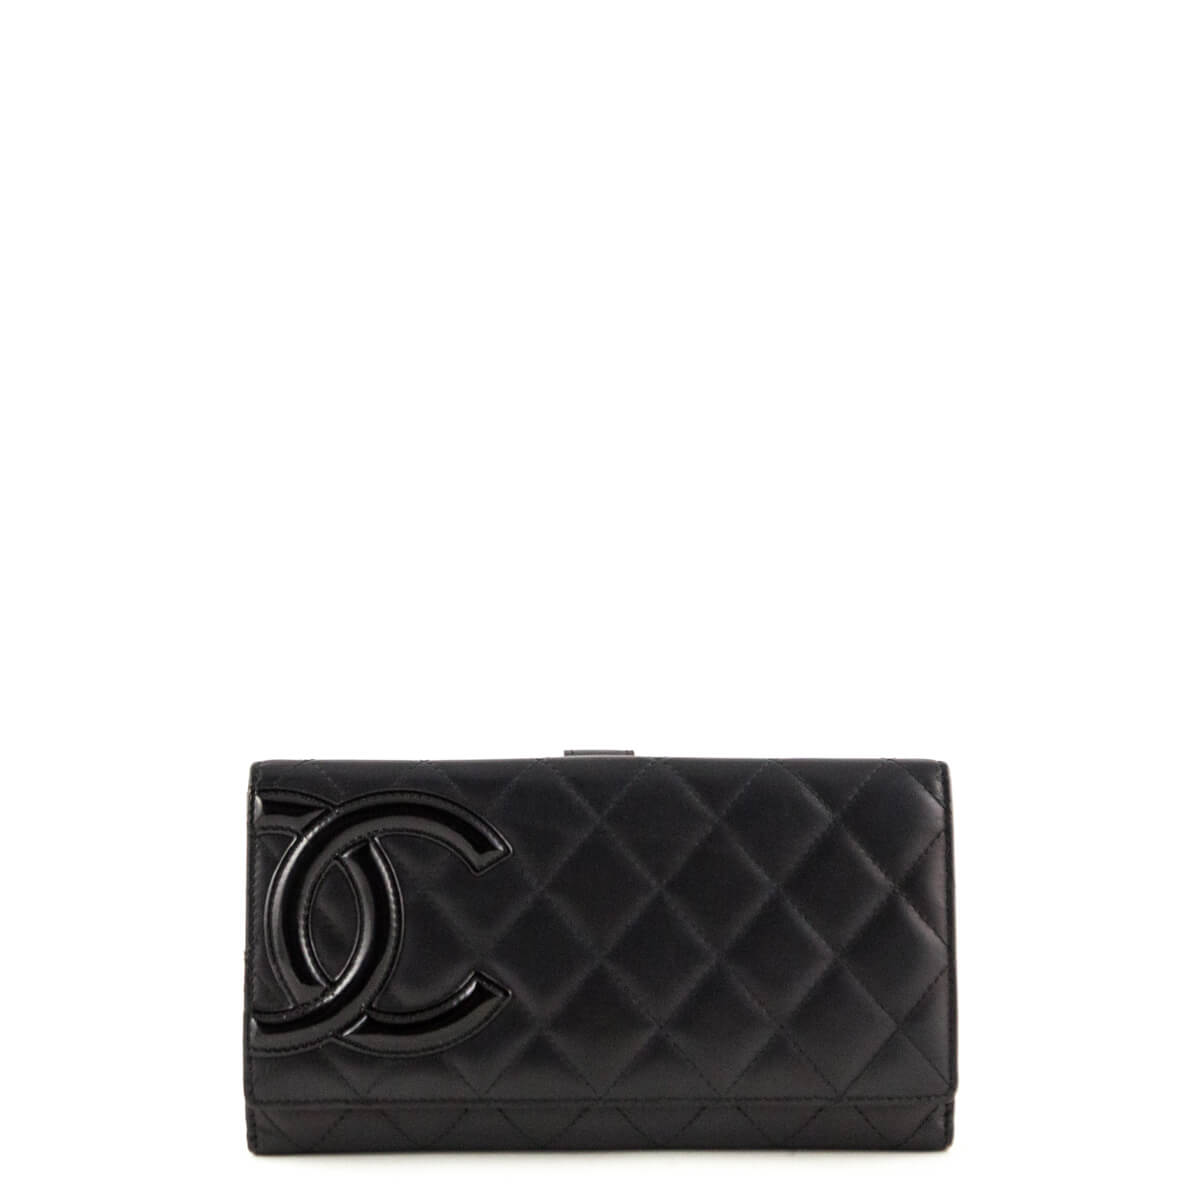 8d94f9695bcc Chanel Black Quilted CC Cambon Wallet - LOVE that BAG - Preowned Authentic  Designer Handbags ...